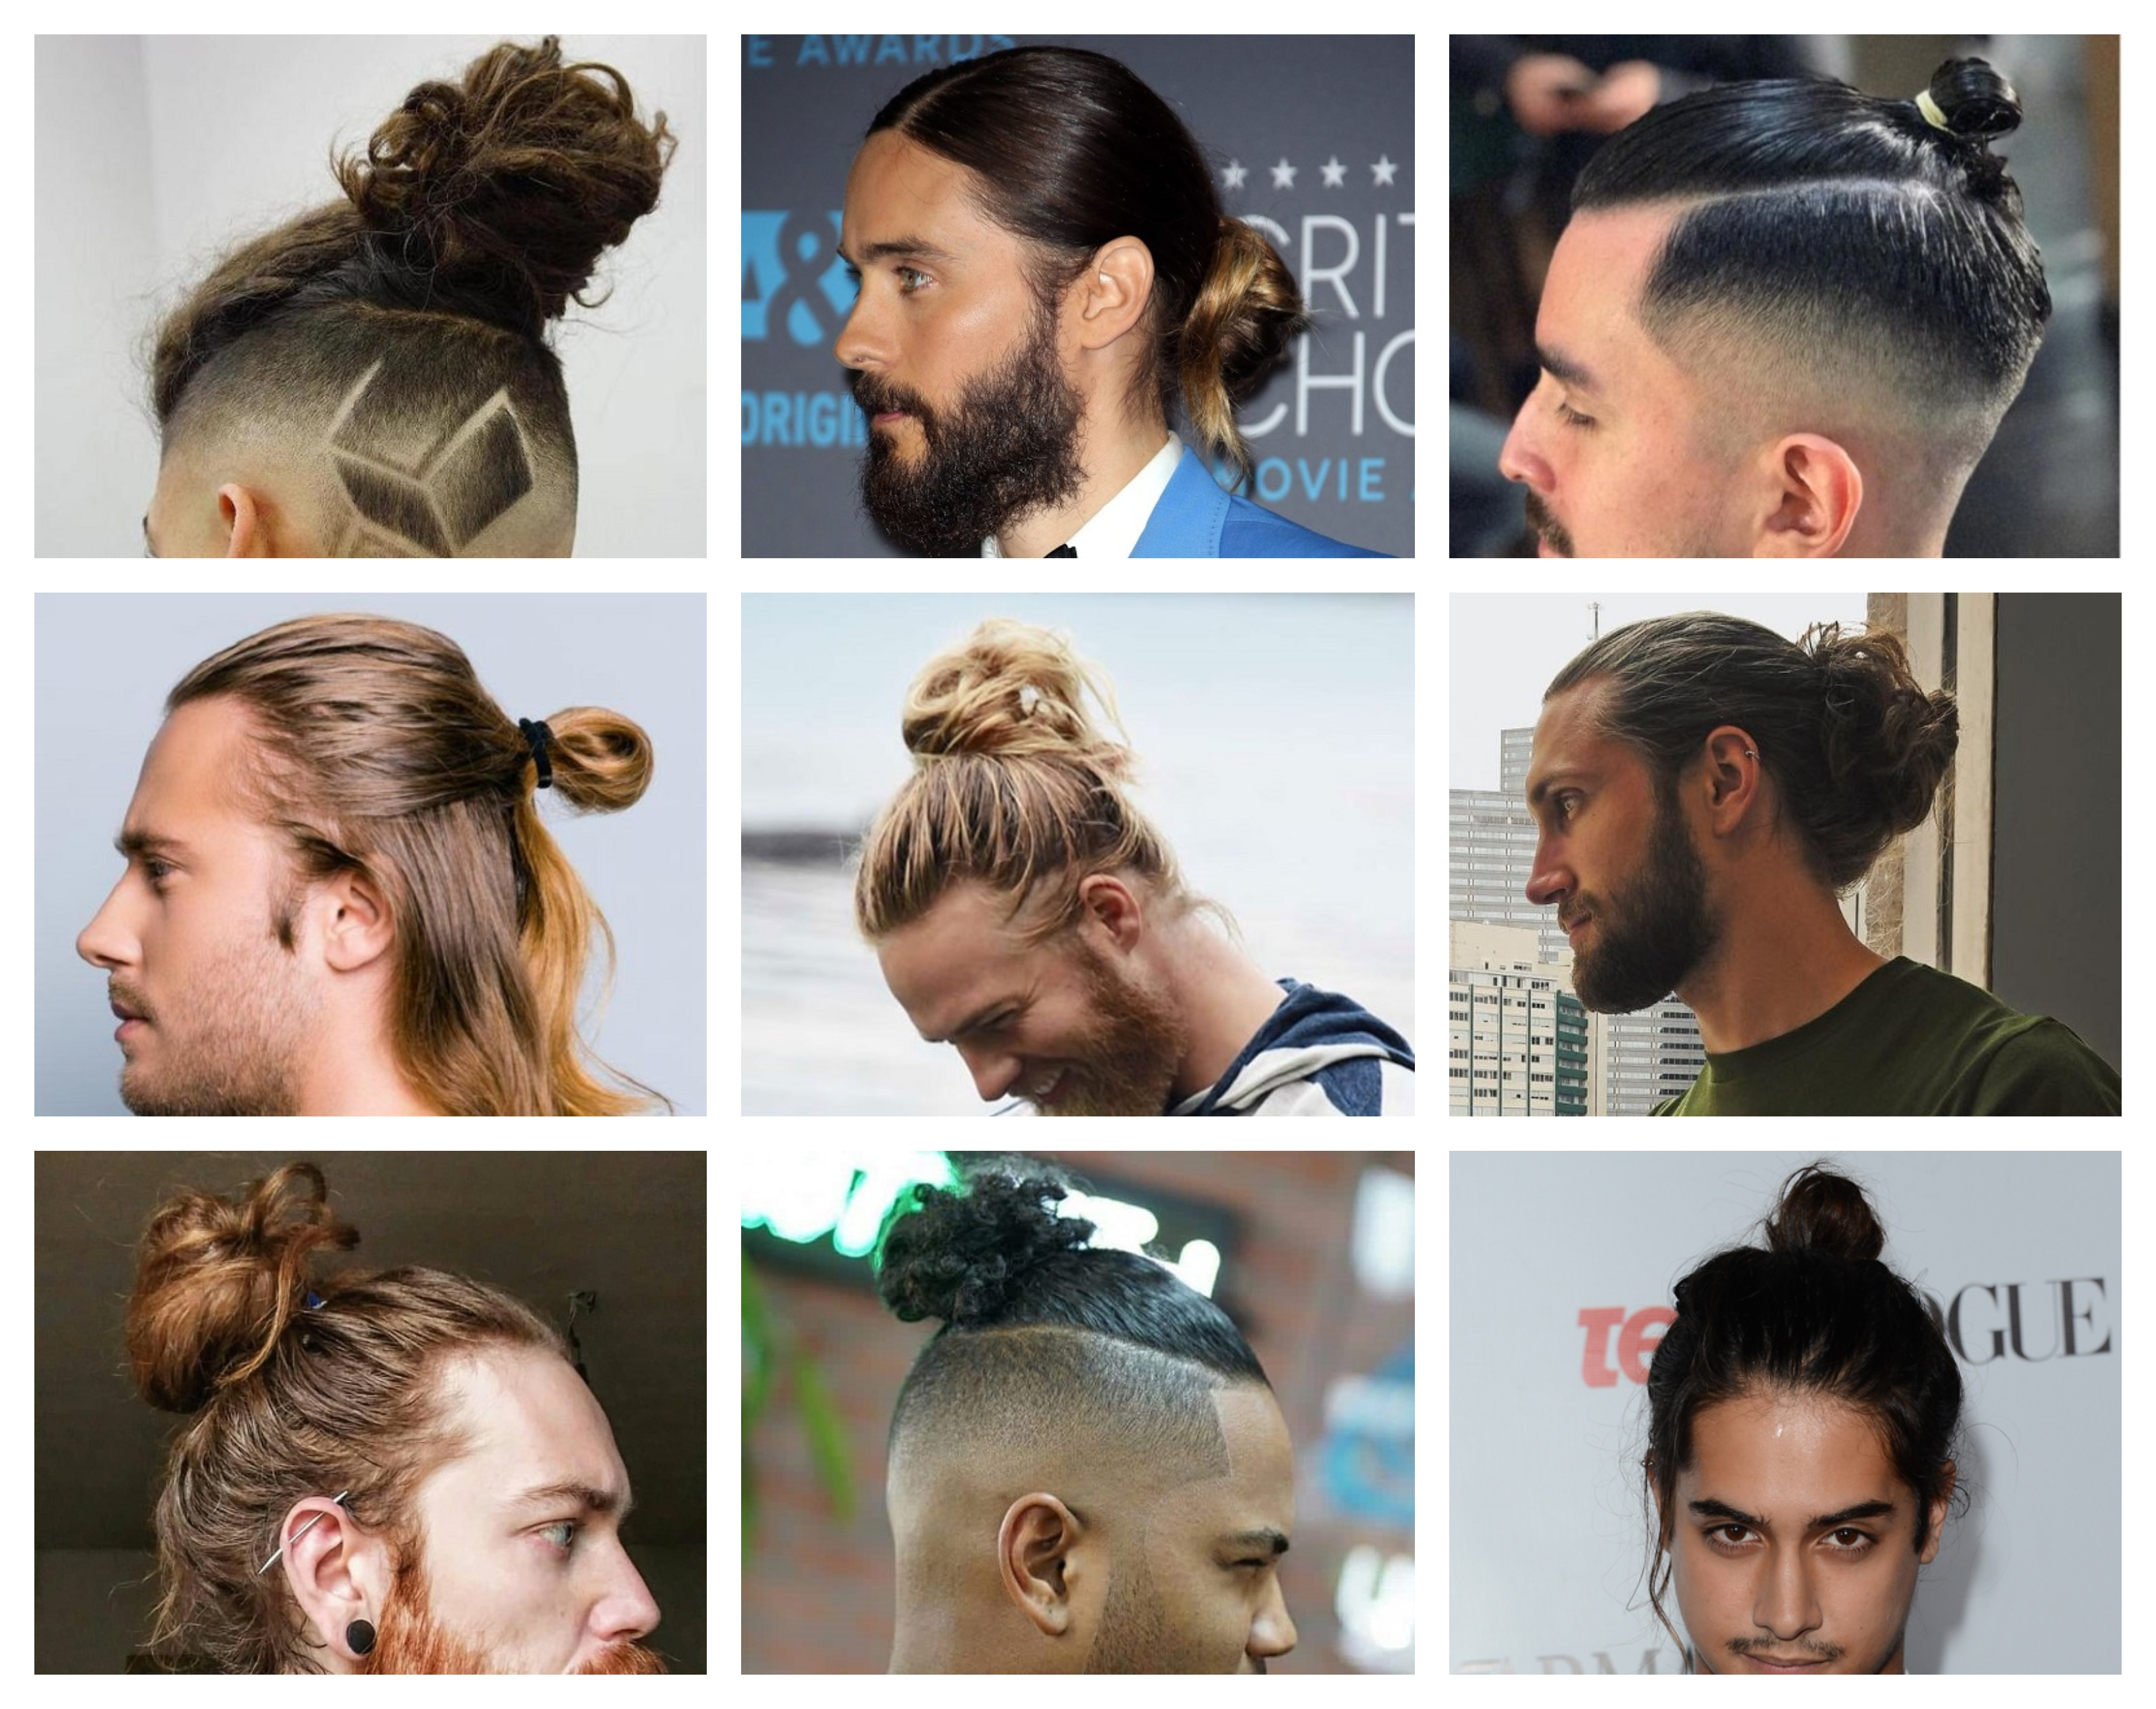 Man bun undercut has become a trendy hairstyle for so many young guys. This Year S Best Man Bun Hairstyles Alldaychic